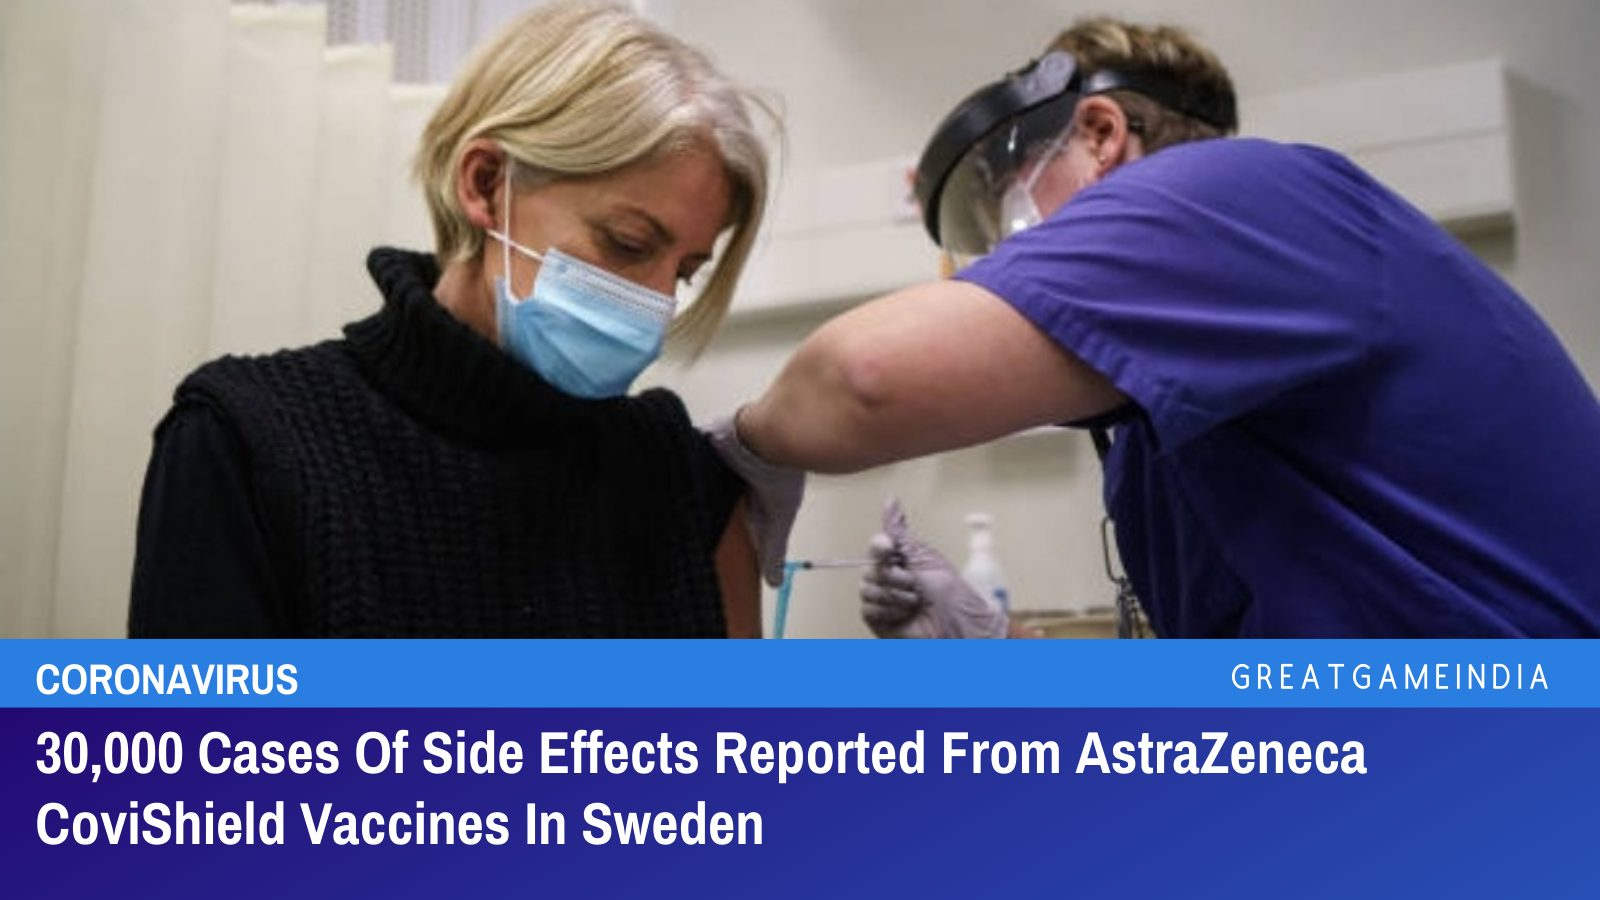 30,000 Cases Of Side Effects Reported From AstraZeneca CoviShield Vaccines In Sweden